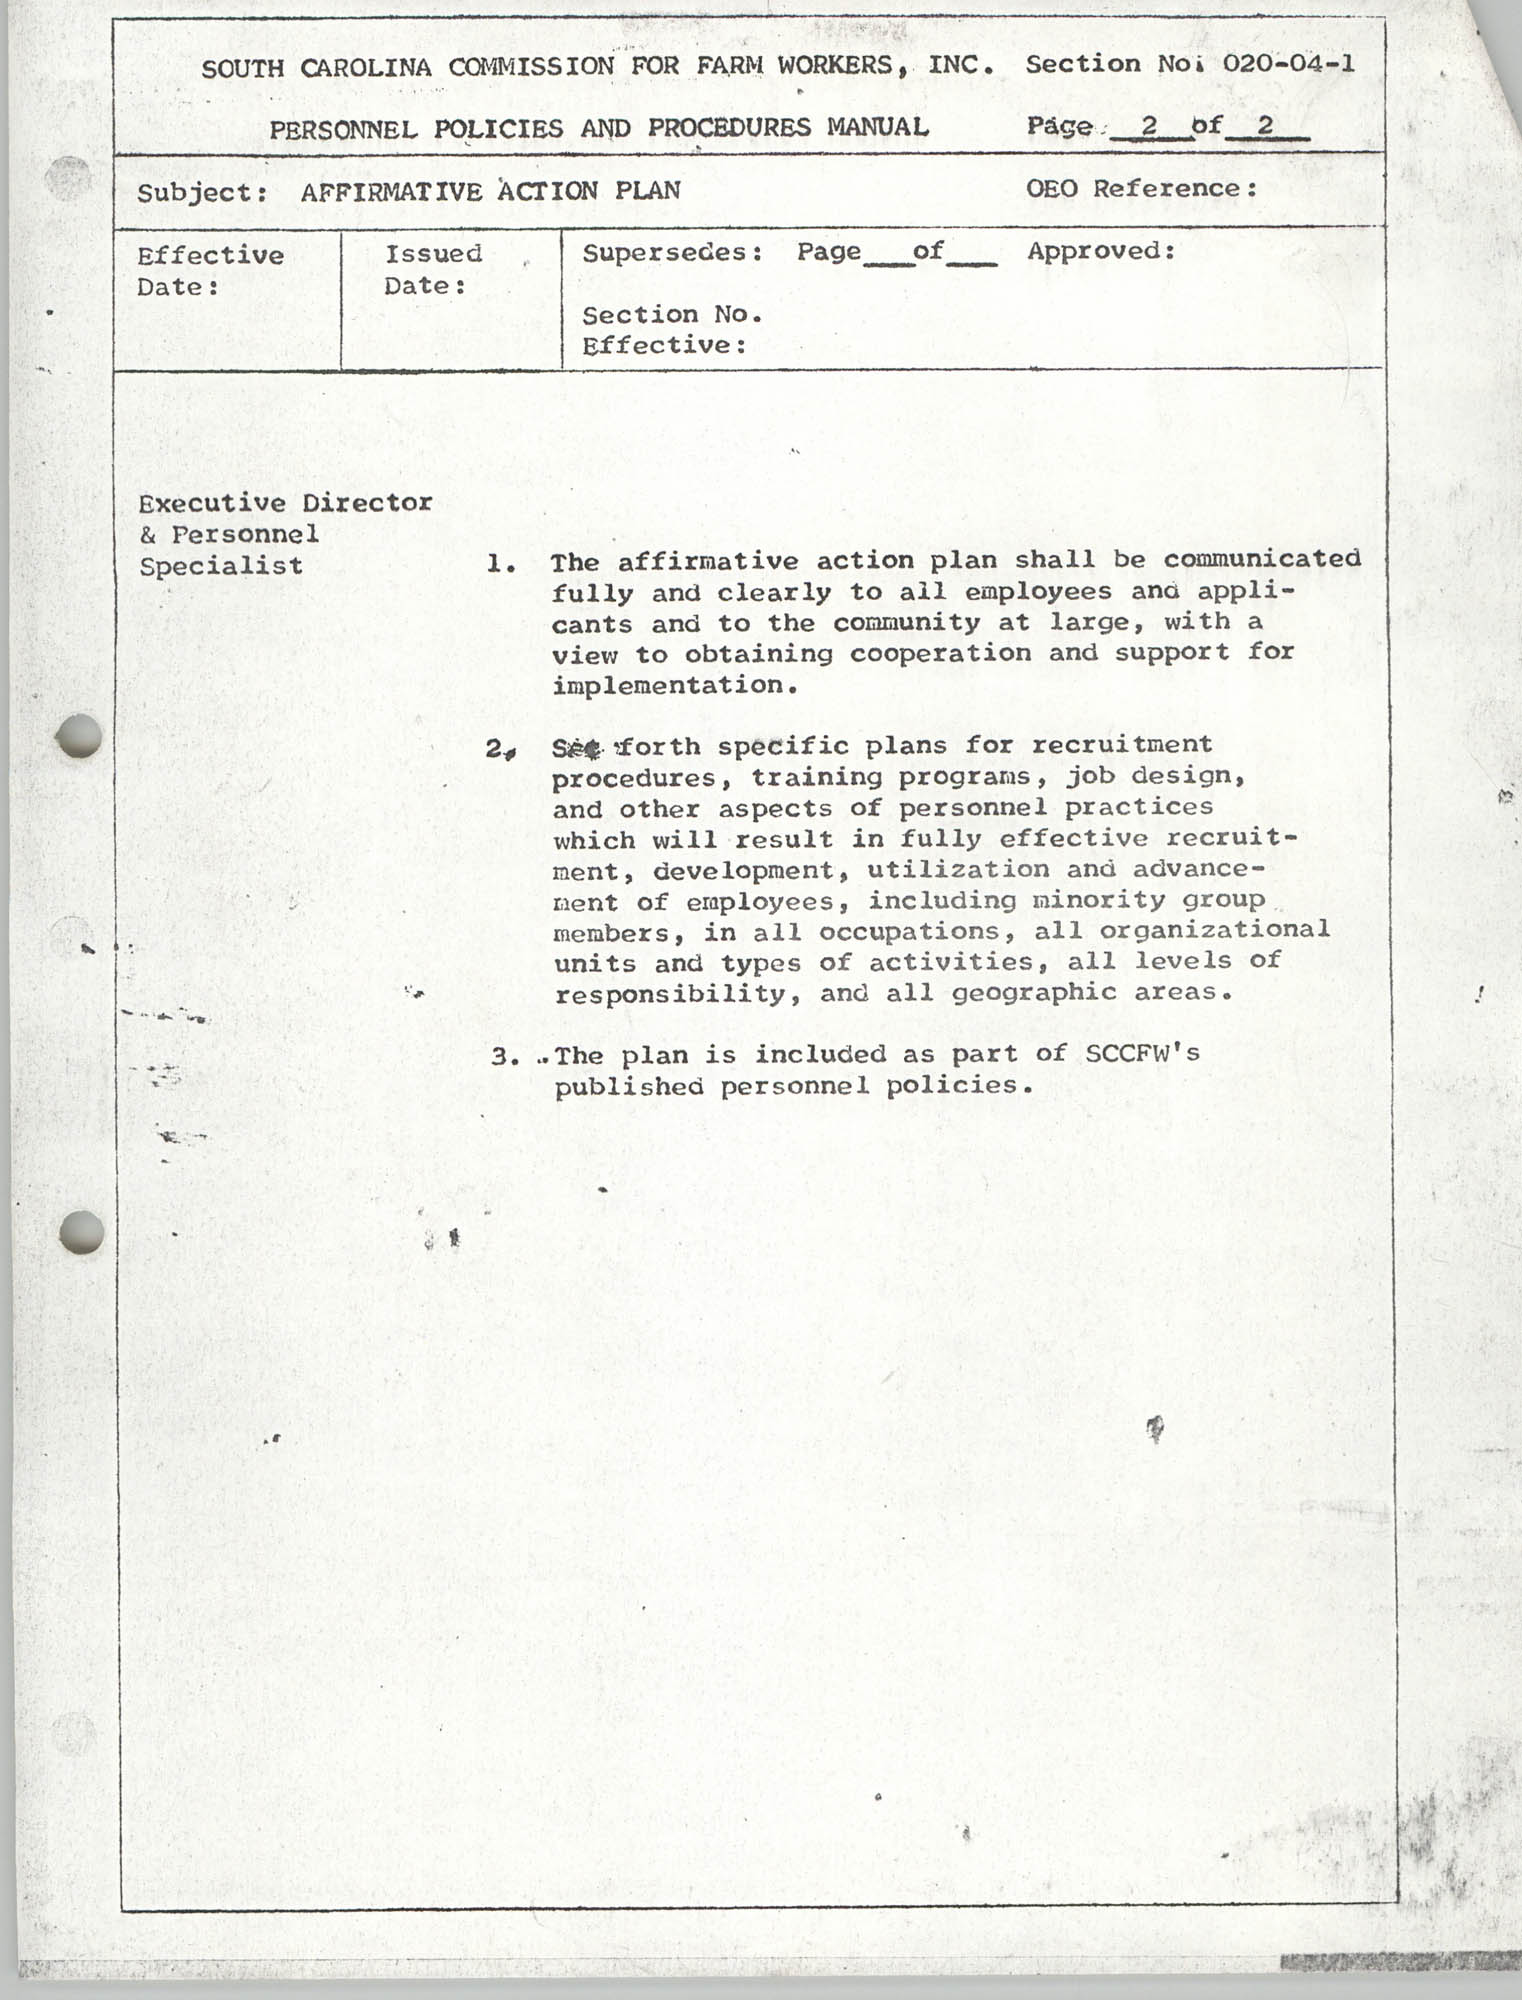 Personnel Policies and Procedures Manual, Section No. 020-04-1, Page 2